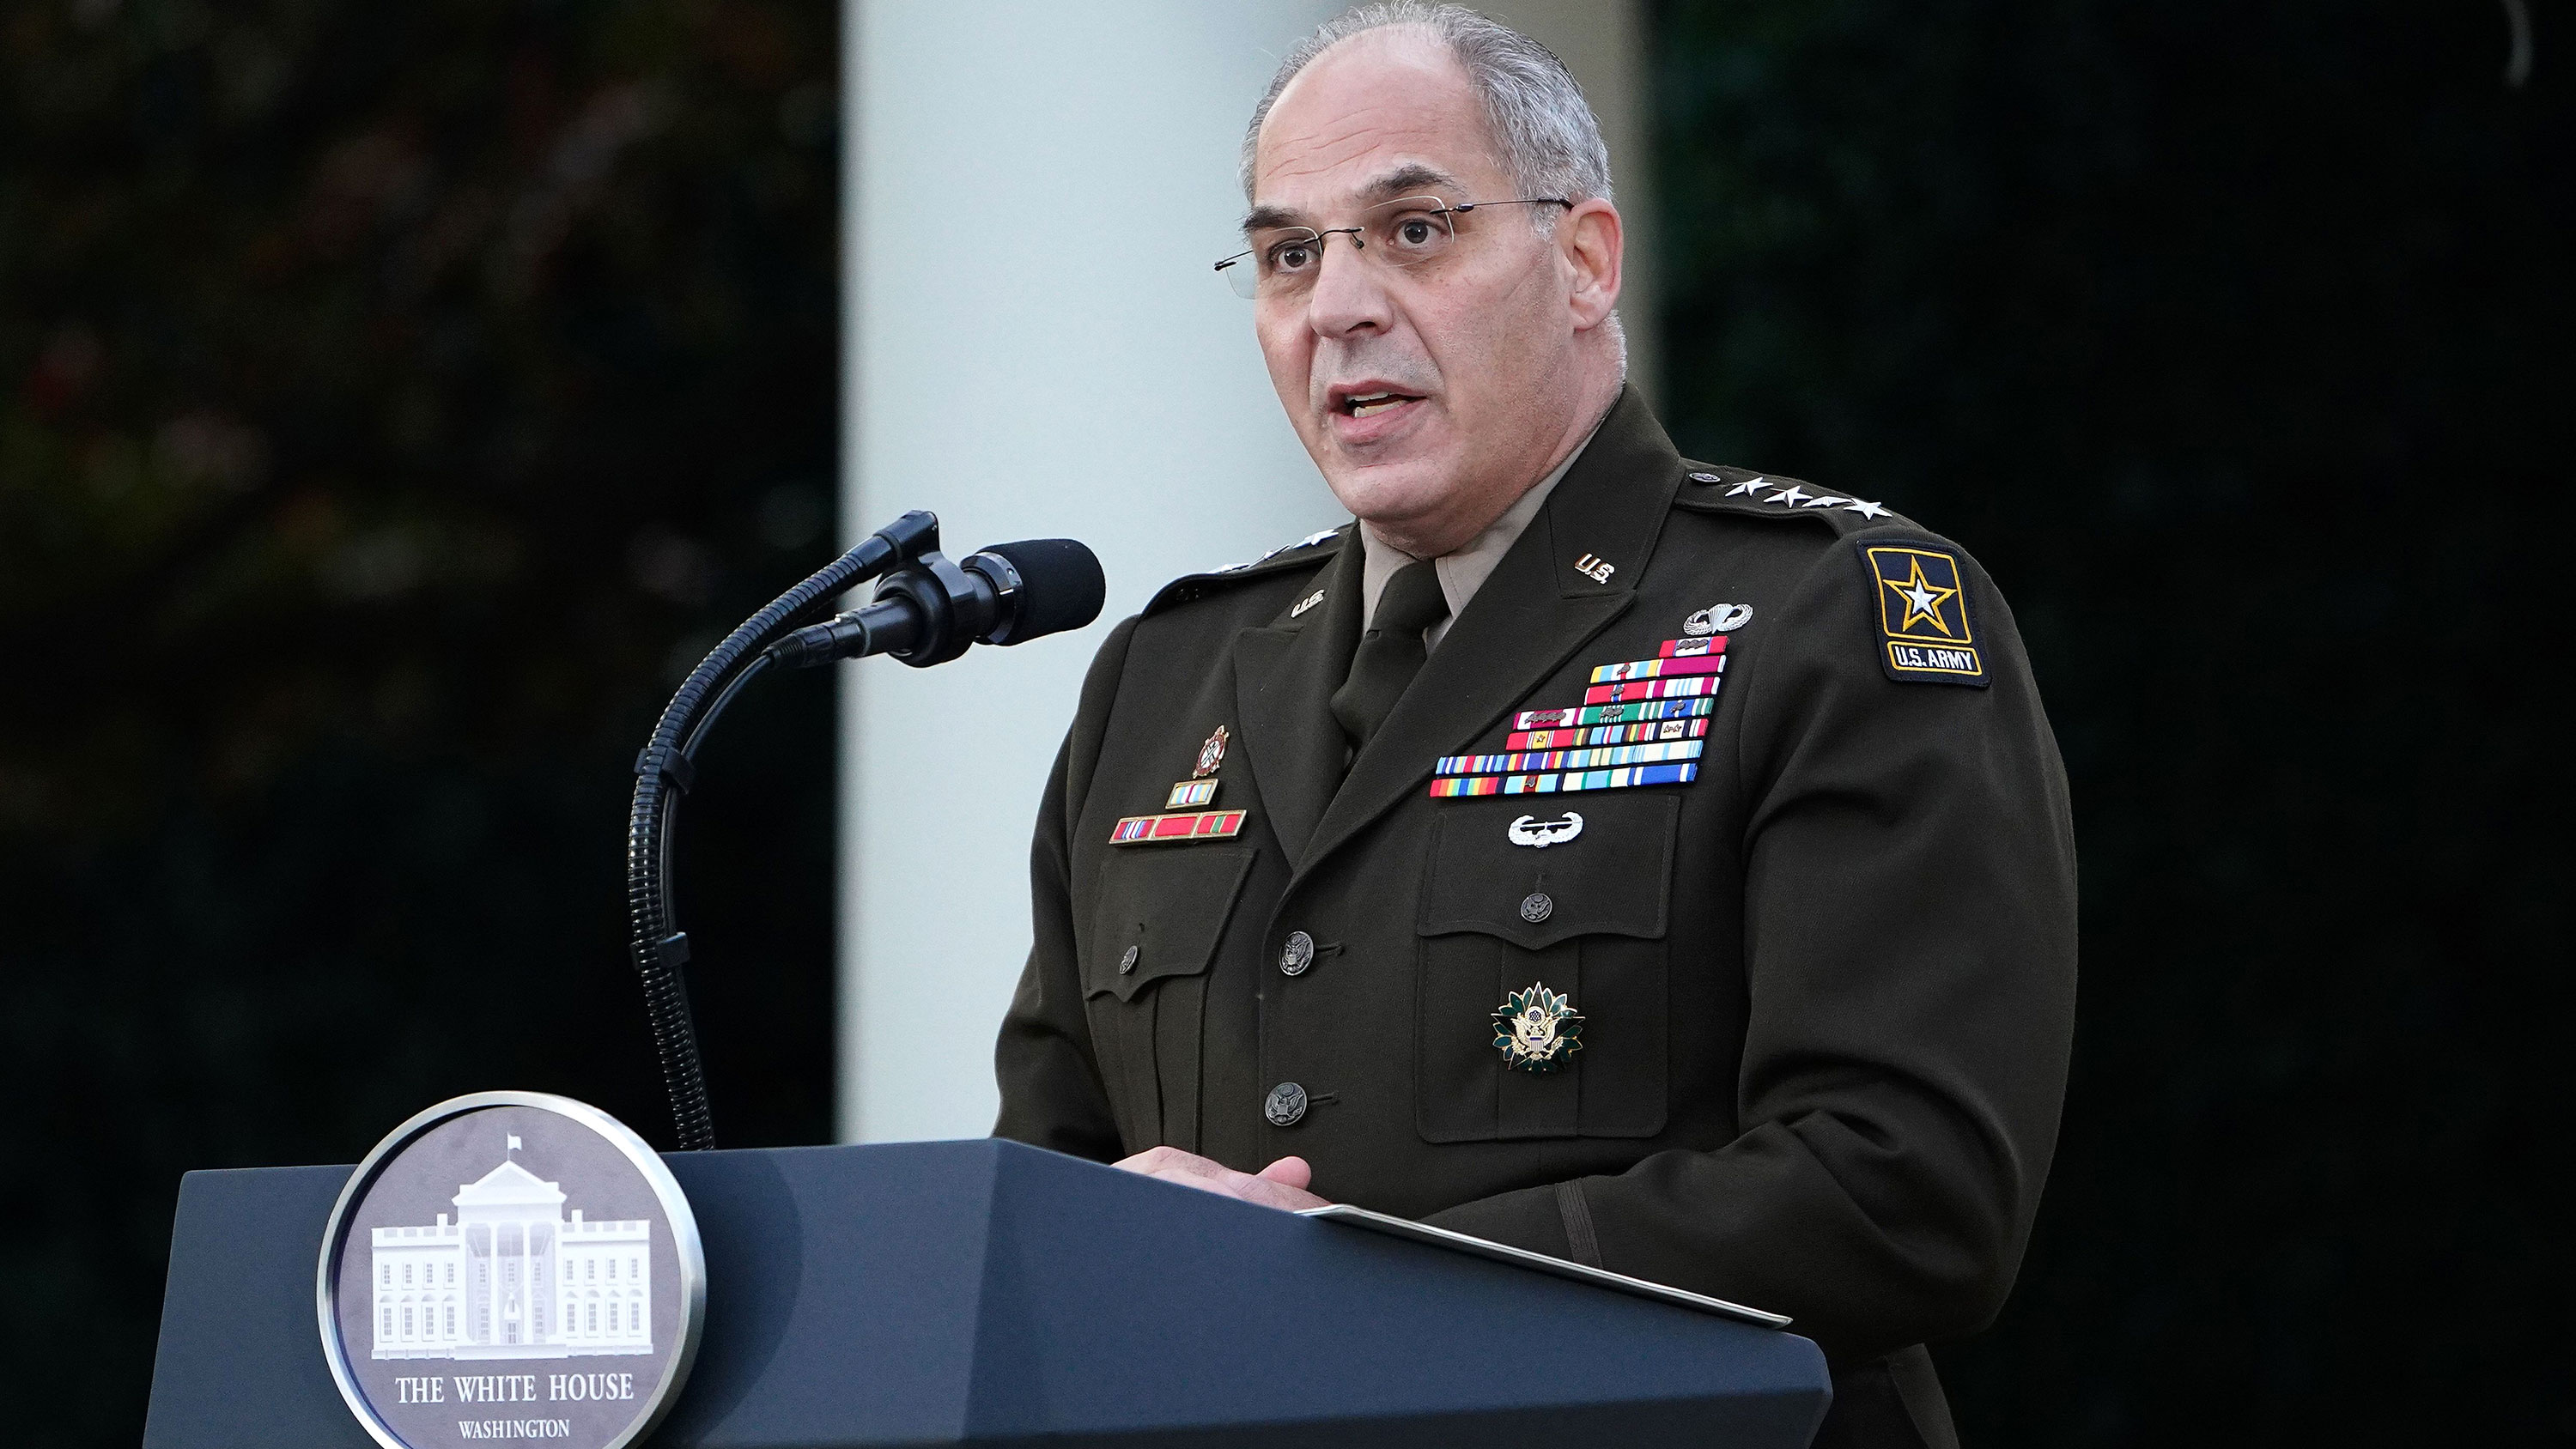 General Gustave Perna speaks during a press conference at the White House on November 13 in Washington, DC.